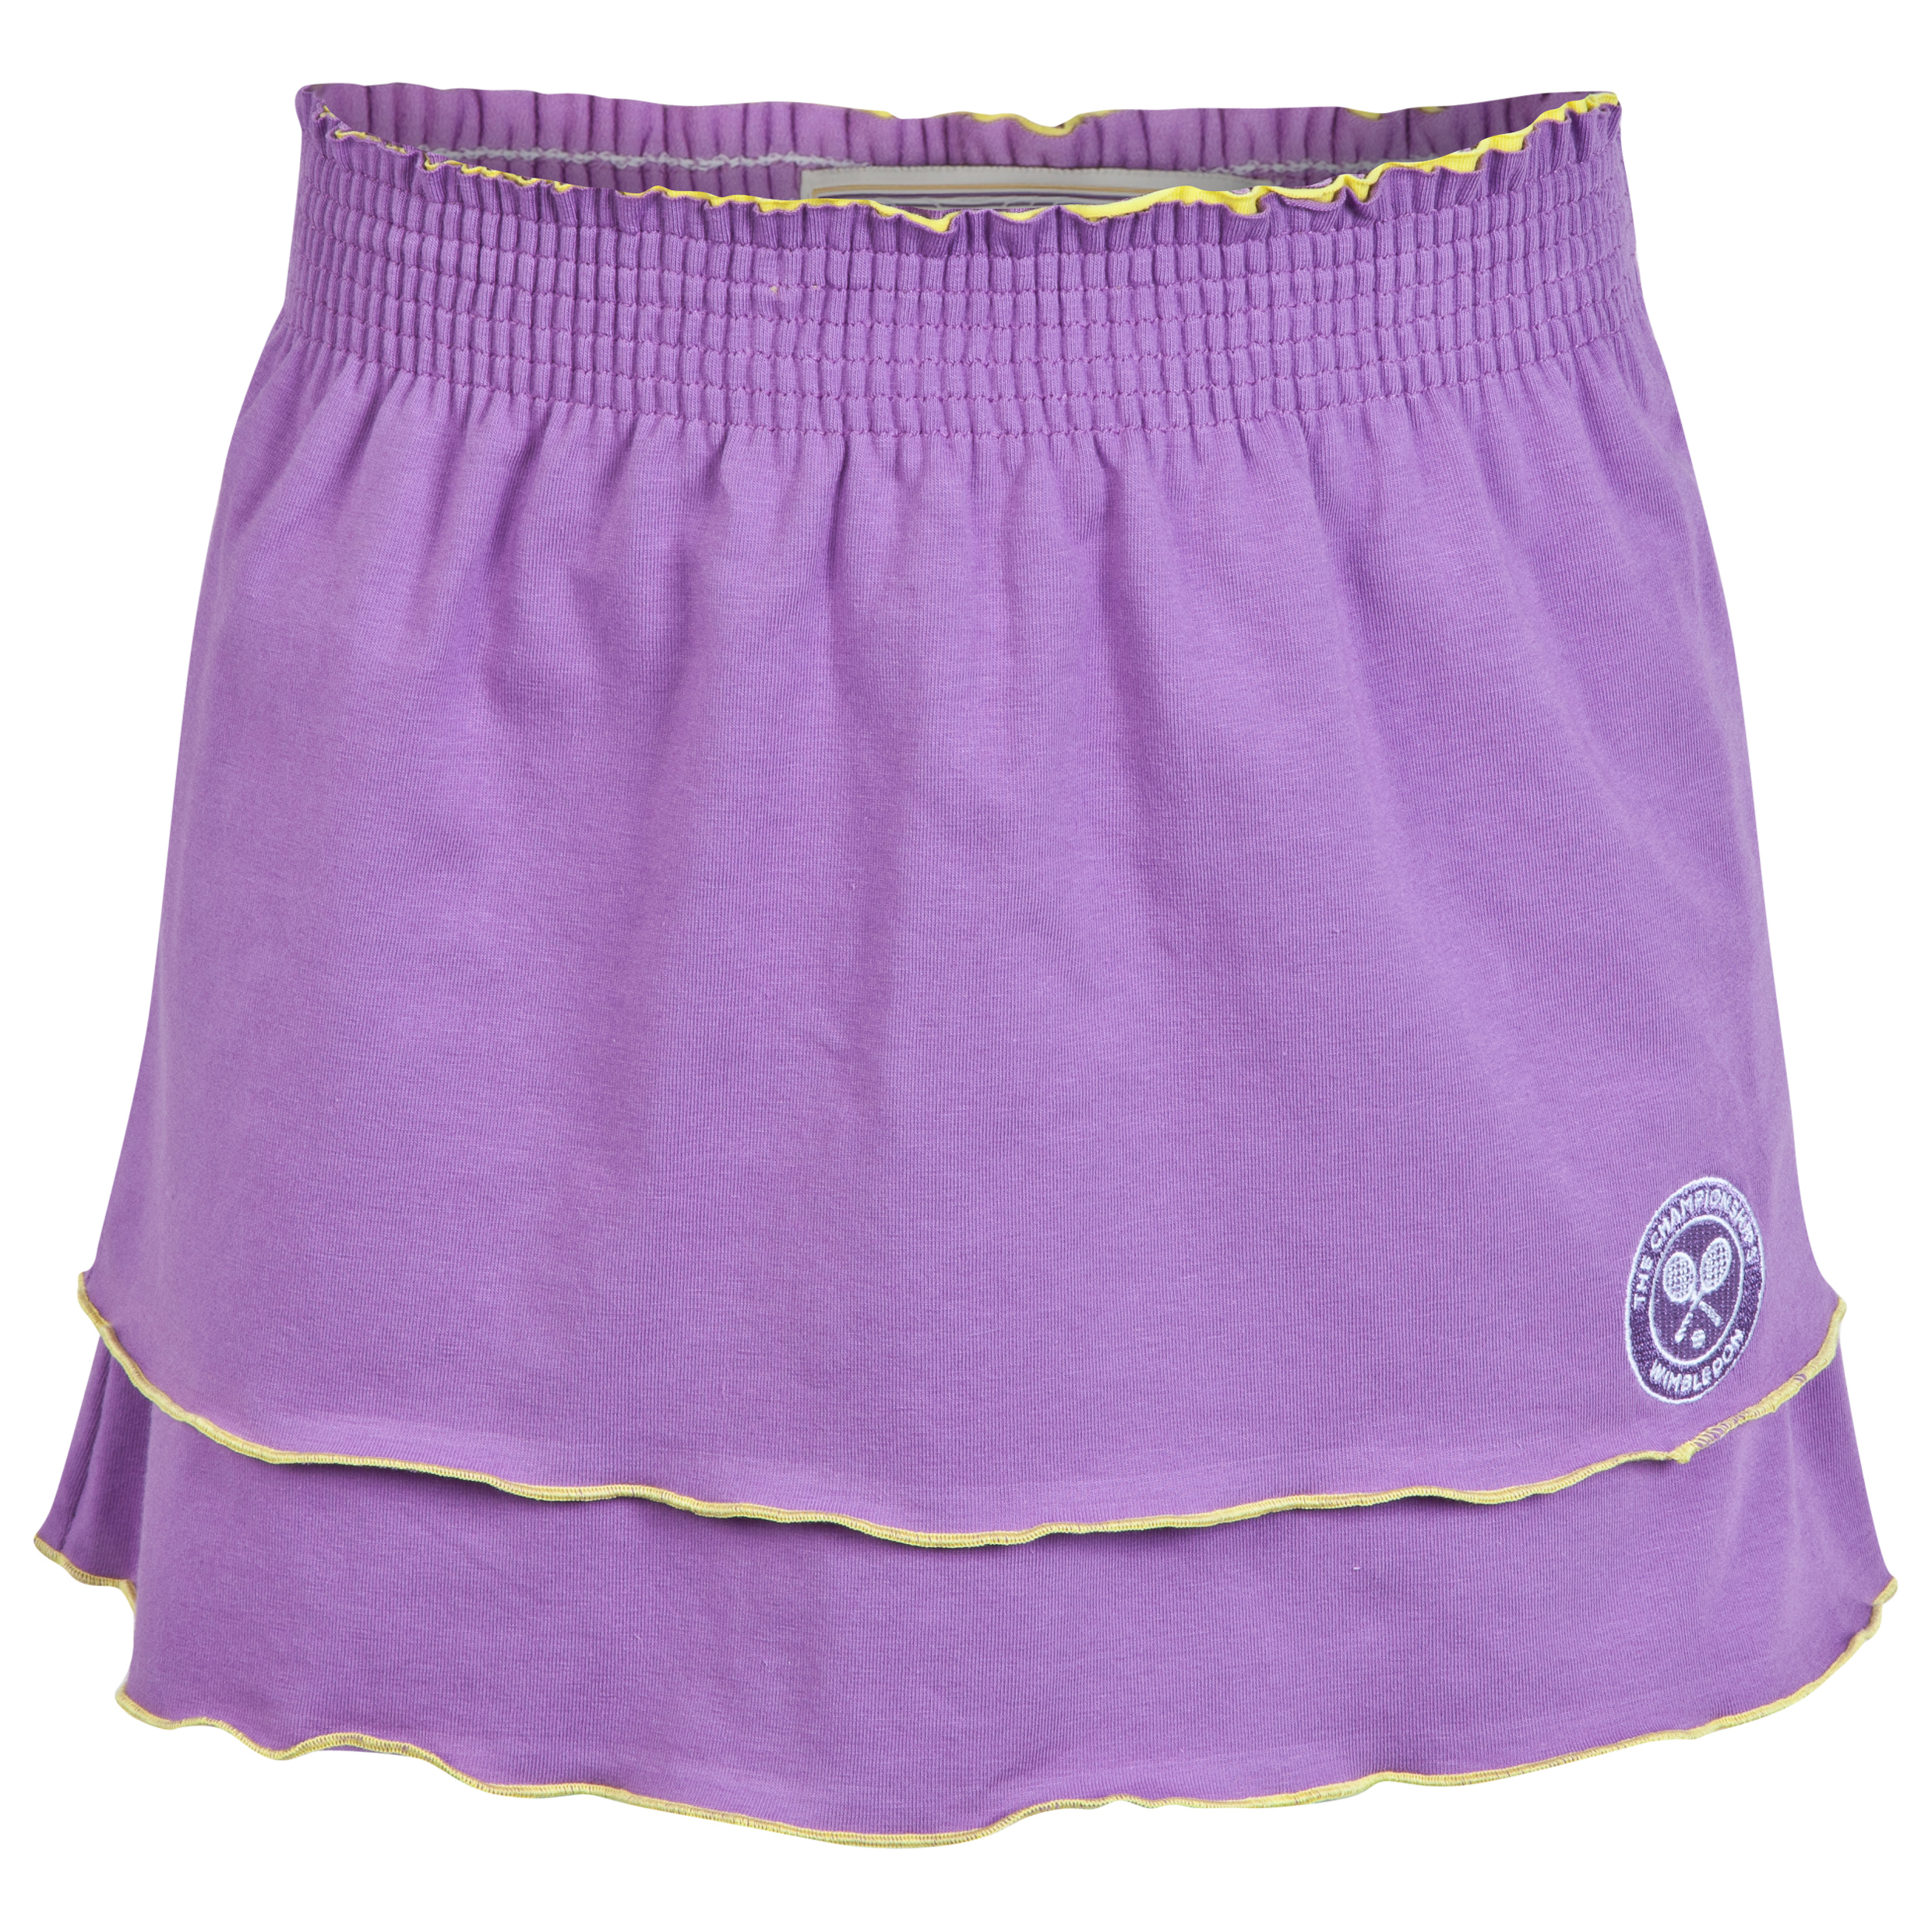 Wimbledon Layered Tennis Skirt - Girls